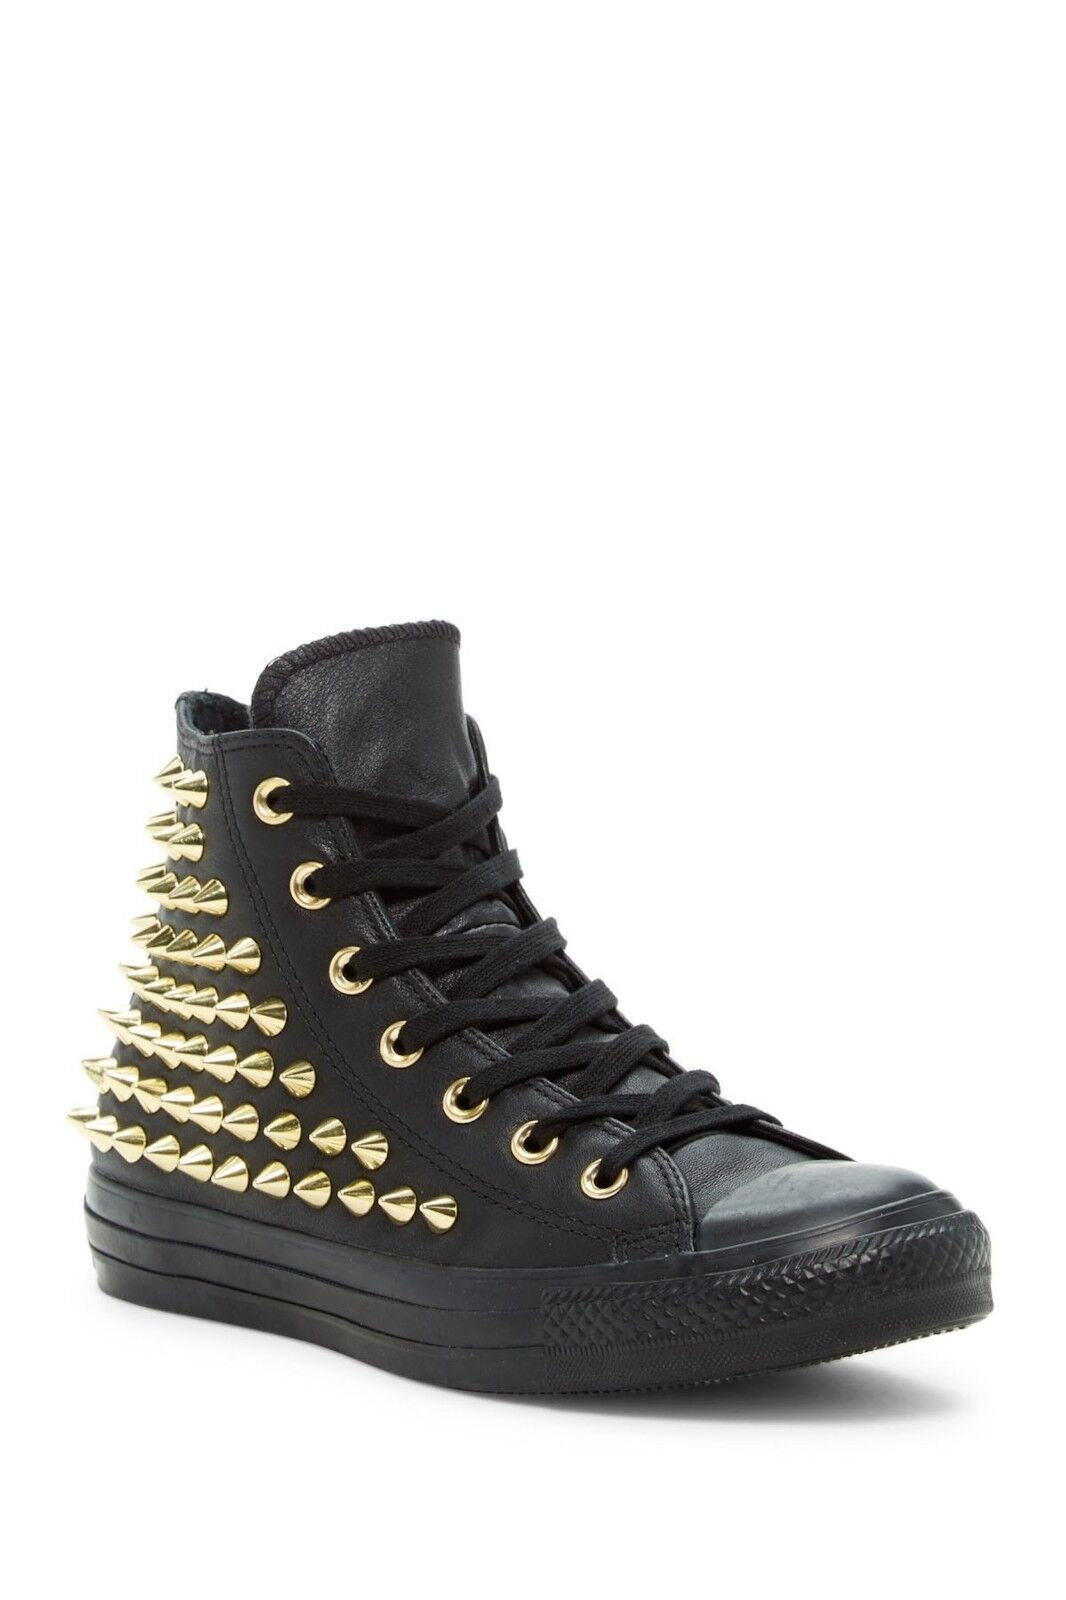 Converse 553017C Chuck Taylor® All Star® Black Leather Studded High Top Sneaker